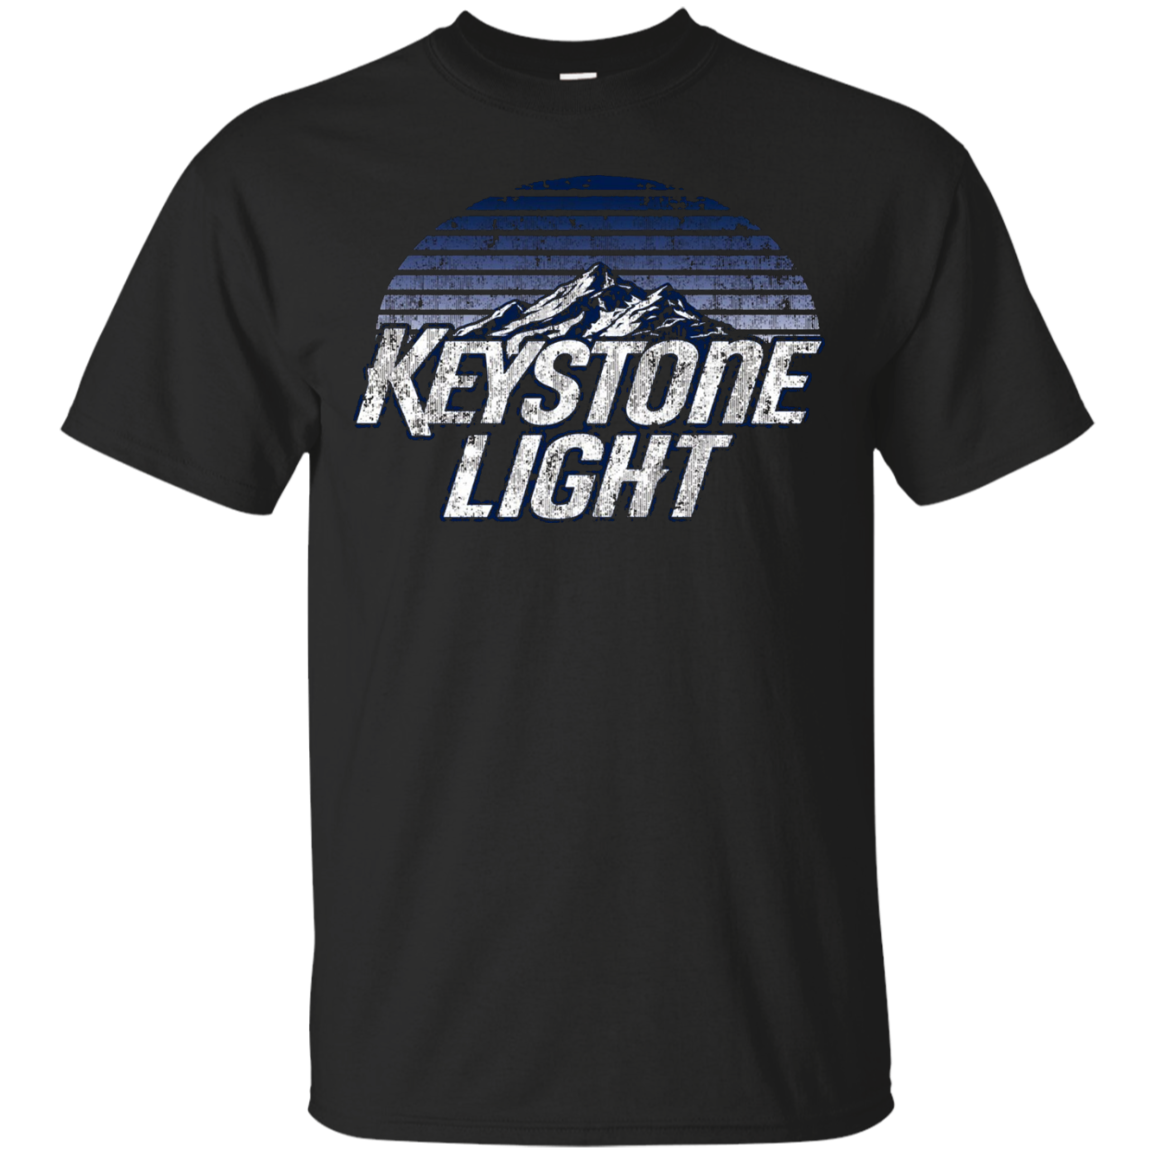 Keystone Light Beer T-Shirt Classic Look